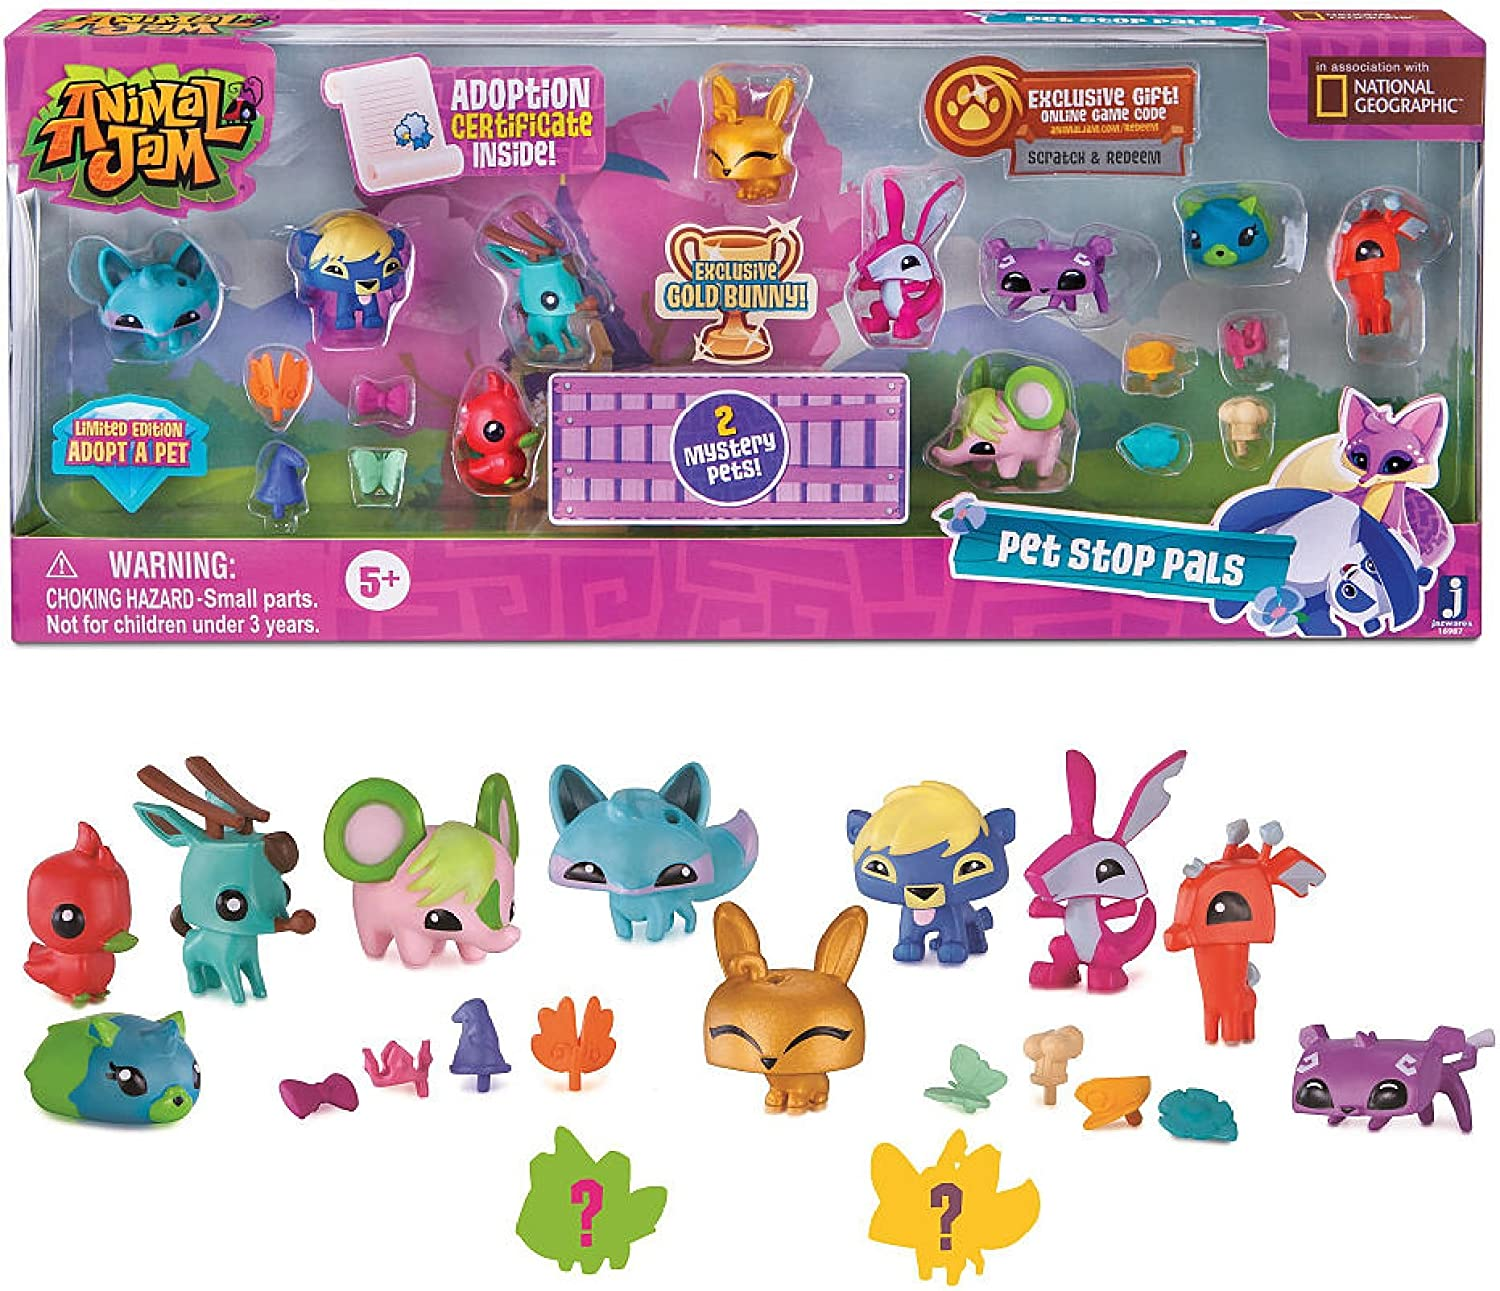 Good Animal Jam Christmas Houses Easy Small Den 2020 Play Wild Amazon.com: Animal Jam Pet Stop Pals with Exclusive Gold Bunny & 2